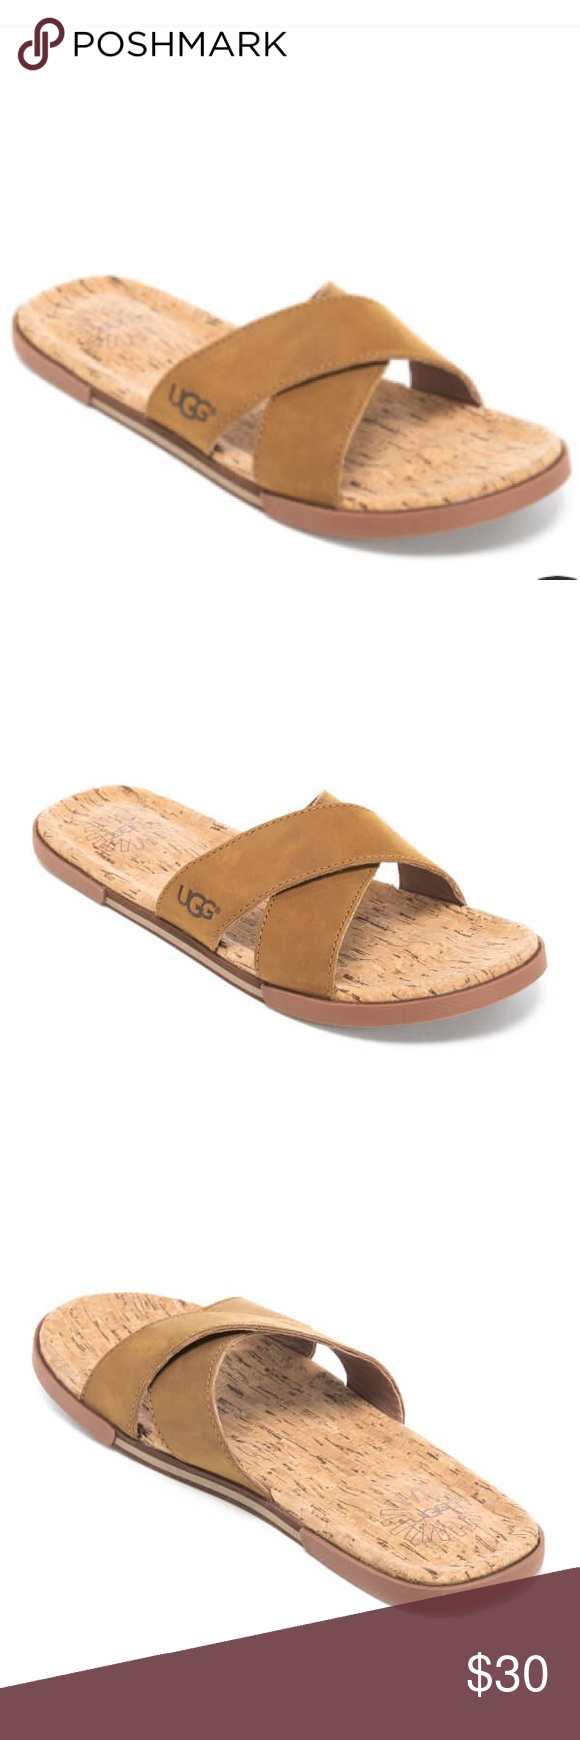 a1ffbf59071 New UGG Men's Cork Double Strap Leather Slide Never Worm!! Men's ...